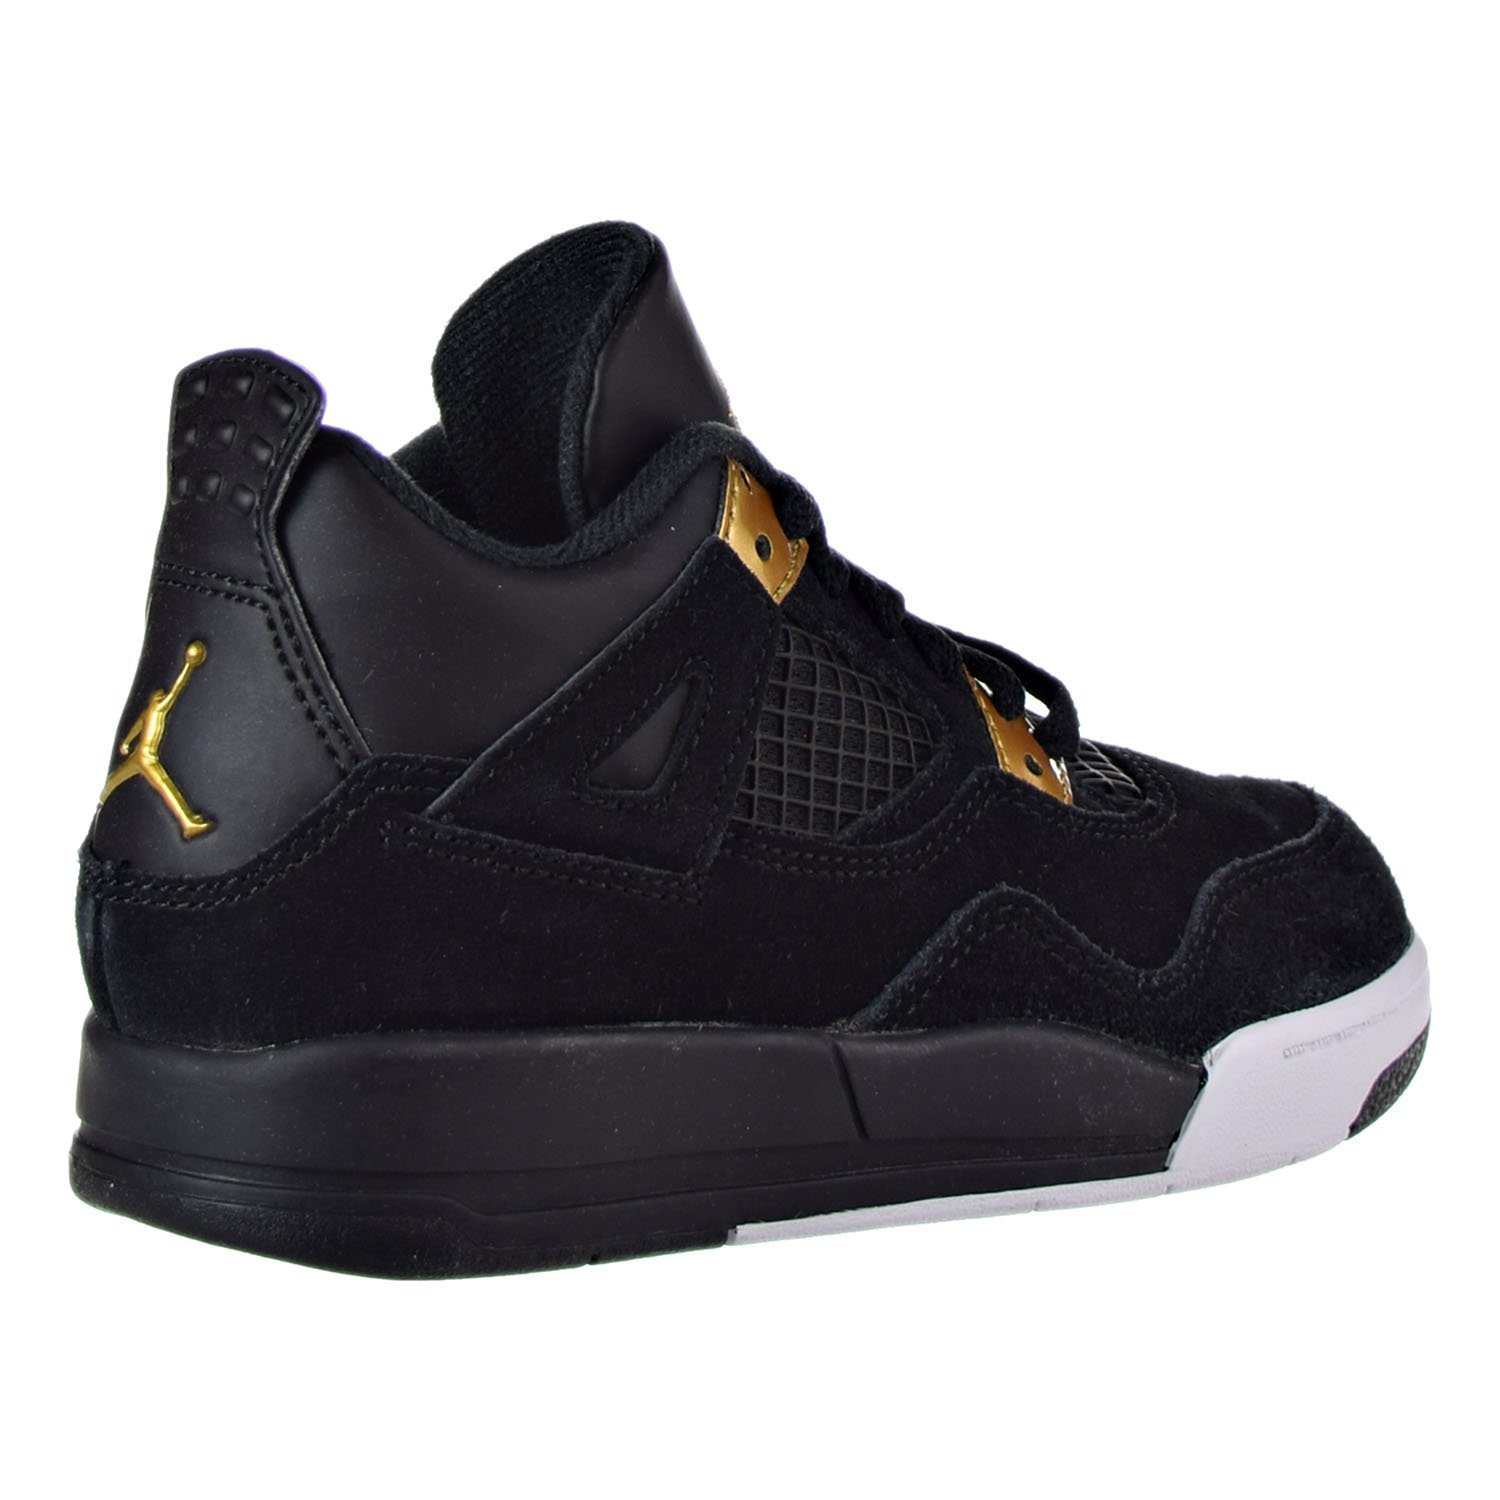 84c0c137ad5a ... norway amazon boys toddler jordan retro 4 basketball shoes 308500 032  black metallic gold white 4c